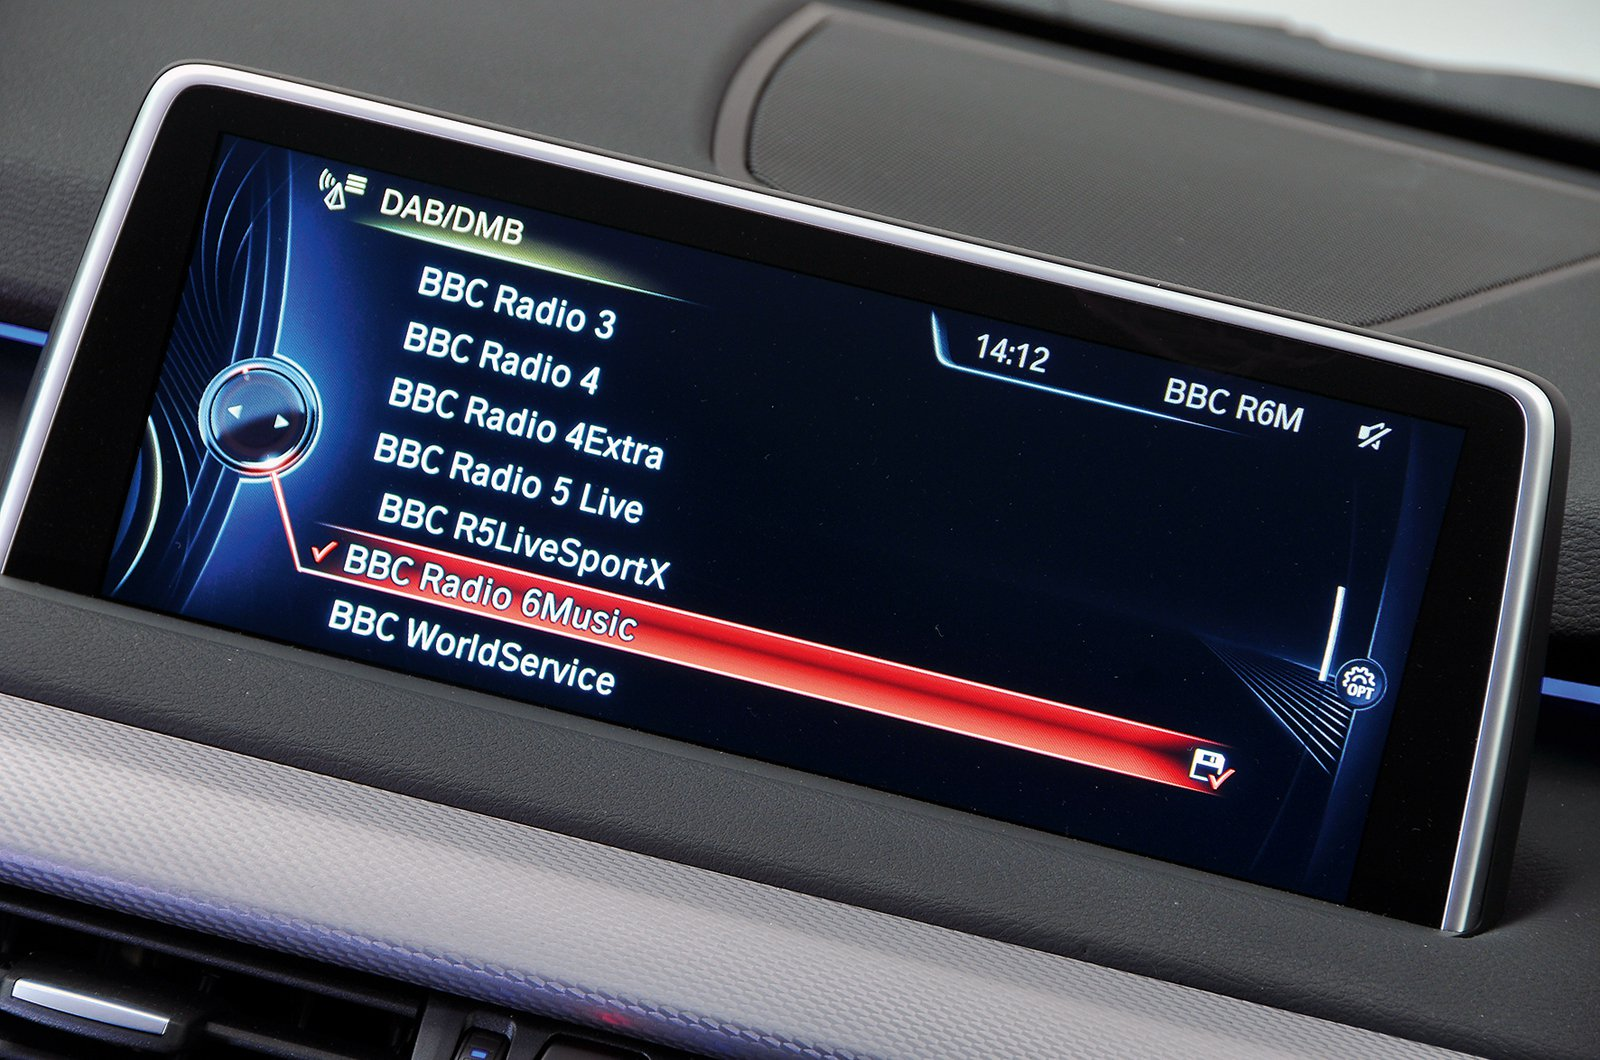 BMW X5 2015 infotainment screen